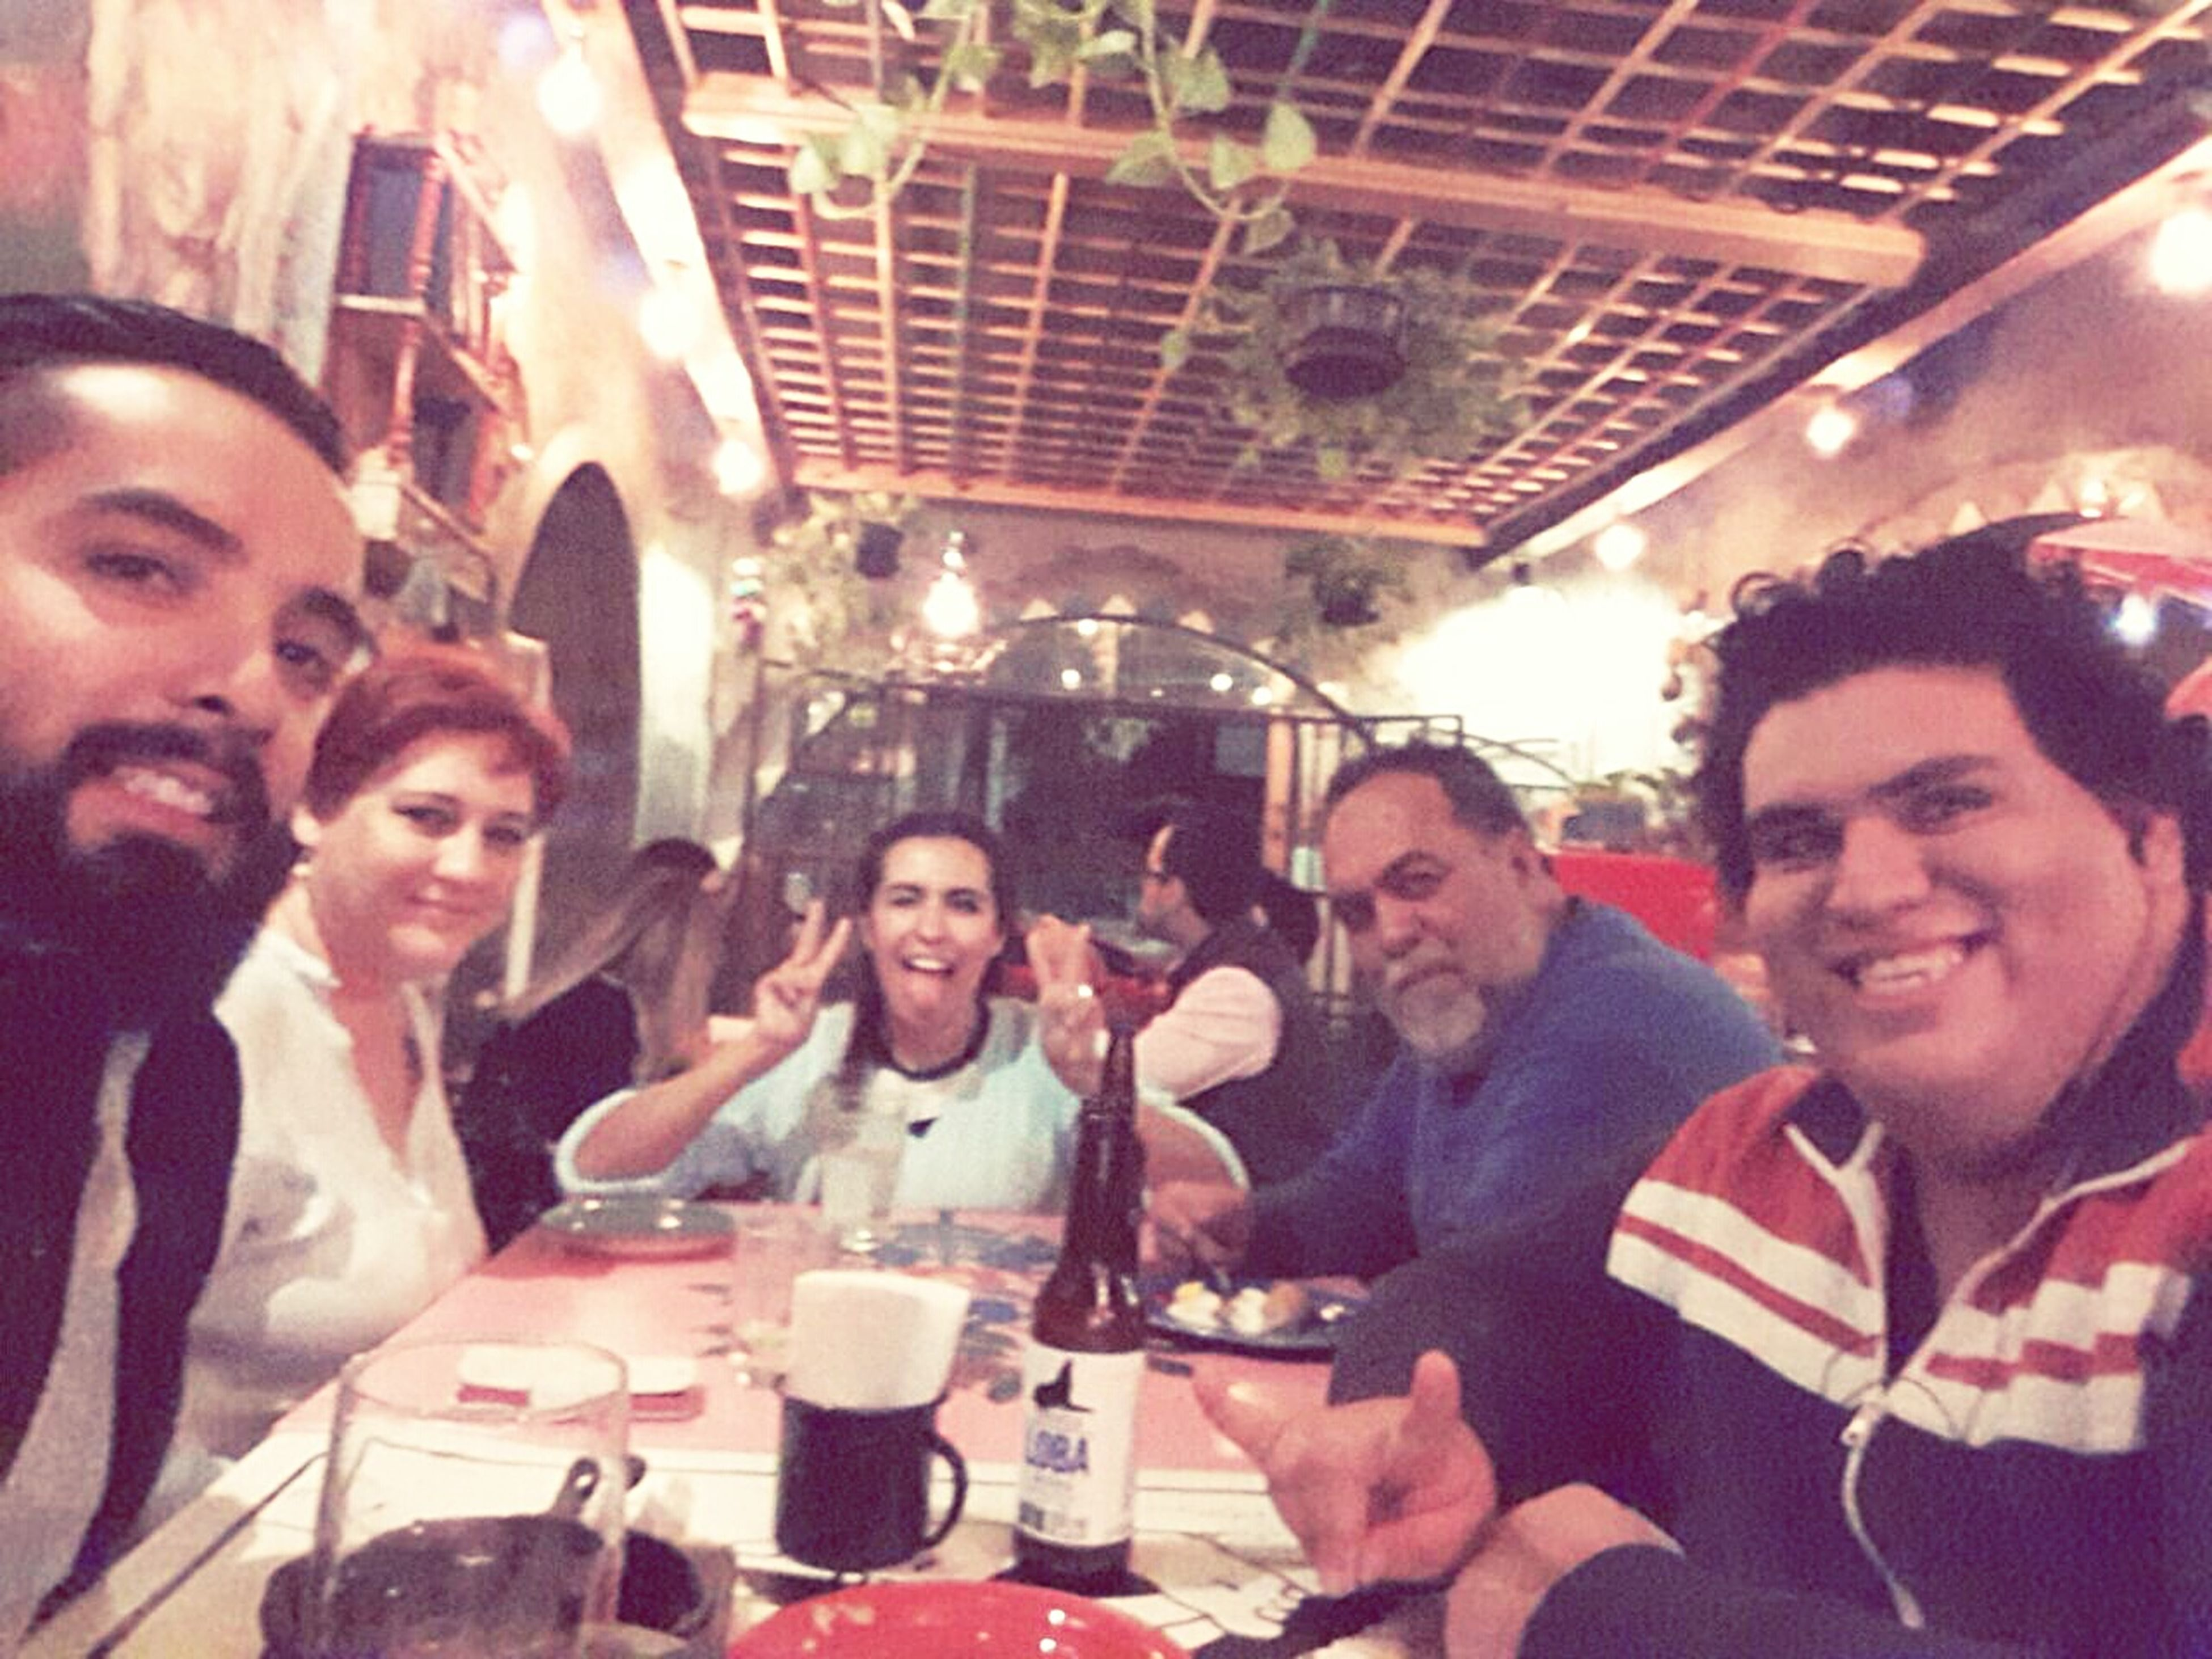 friendship, young adult, young women, women, enjoyment, men, adults only, adult, fun, restaurant, togetherness, smiling, drink, food and drink, party - social event, people, city, night, leisure activity, cheerful, indoors, alcohol, happy hour